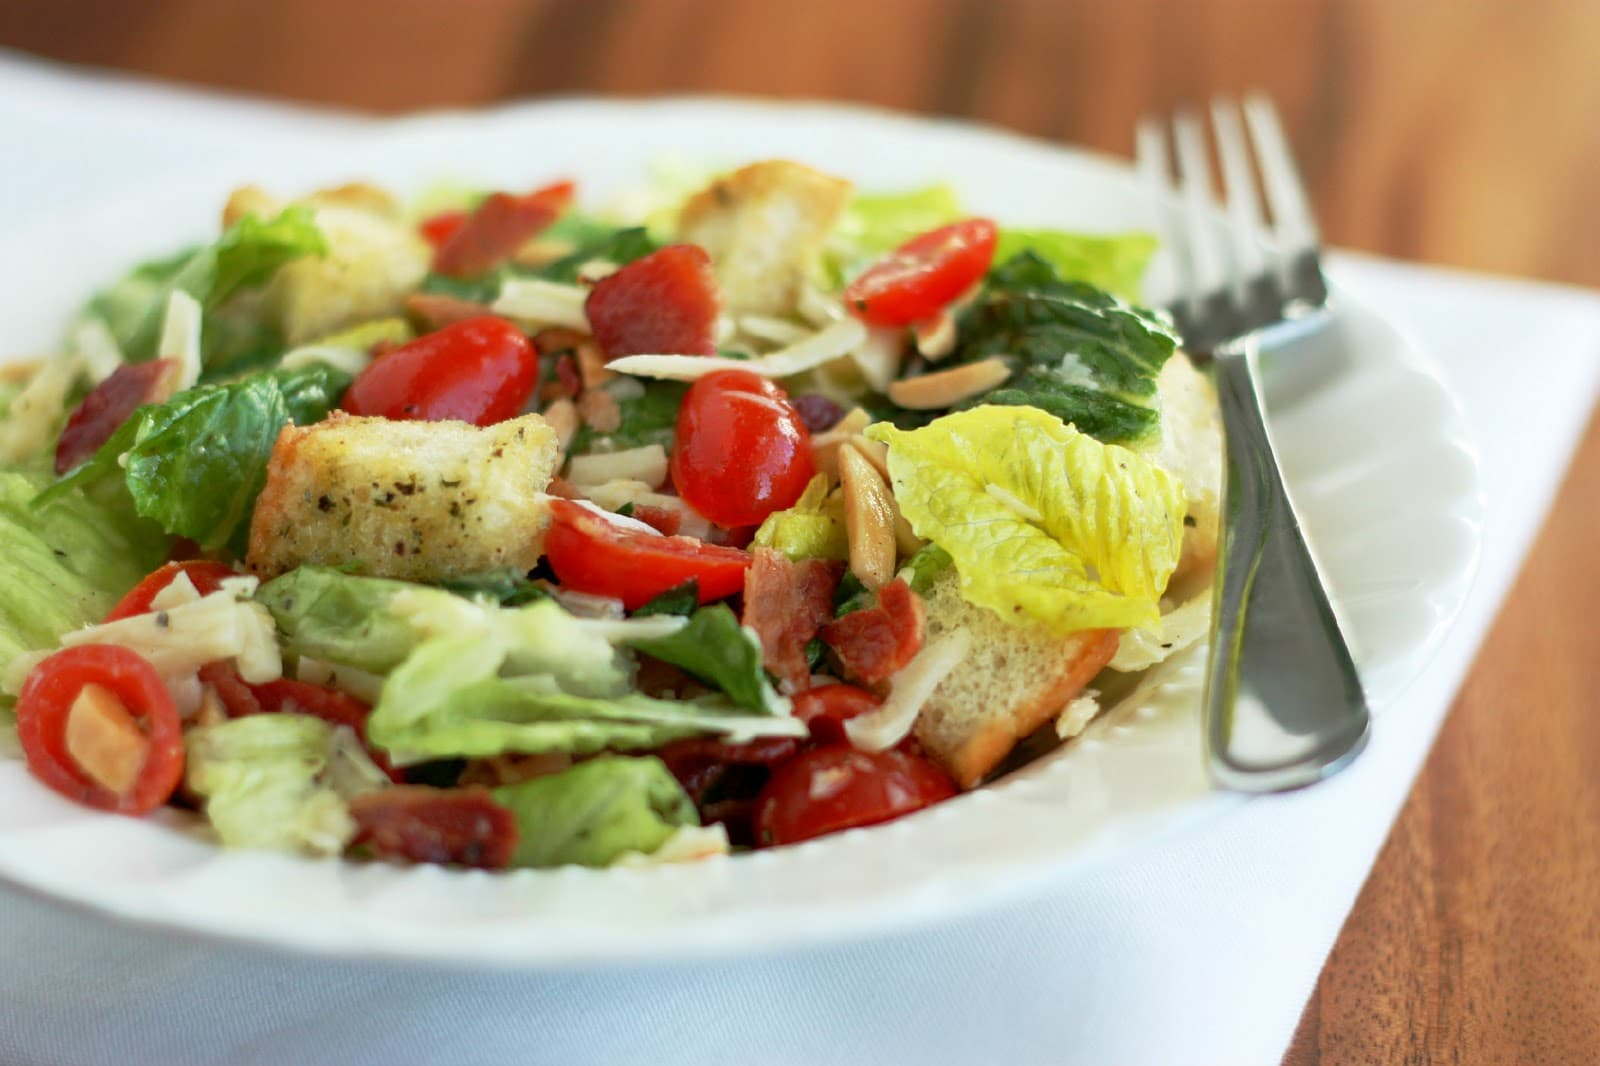 Ritzy Green Salad (a must have recipe) - Cooking Classy